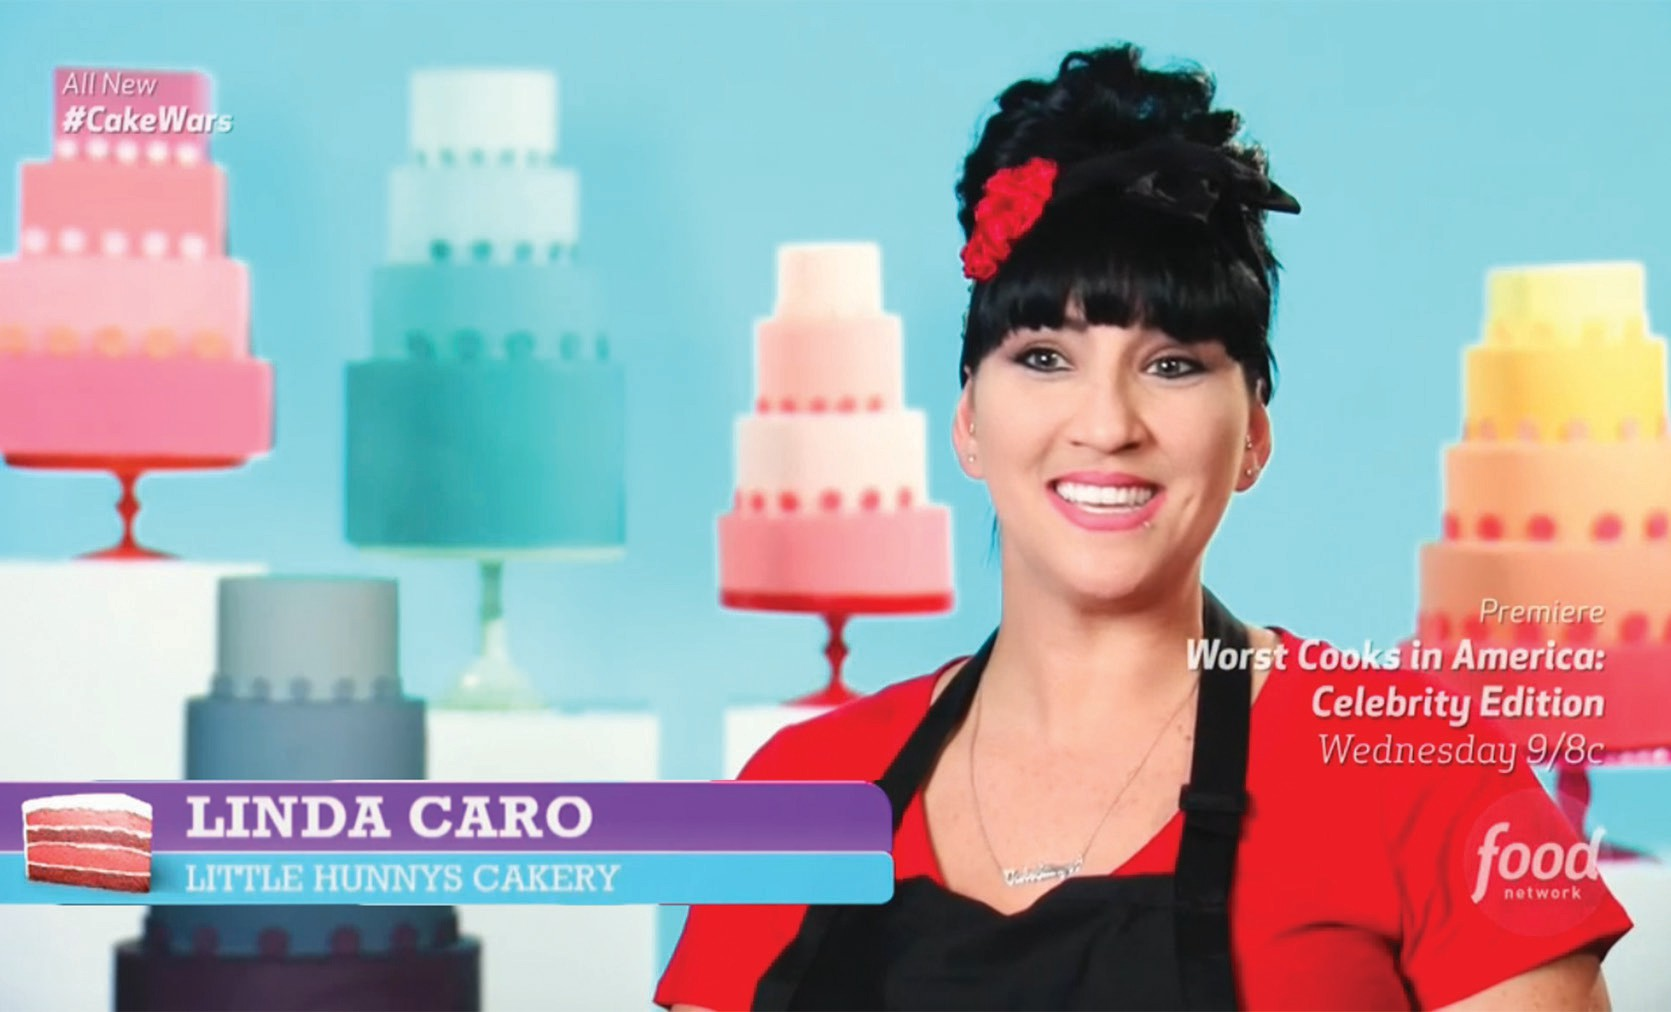 When you win something like the Cake Wars, you get turned into an instant celebrity.